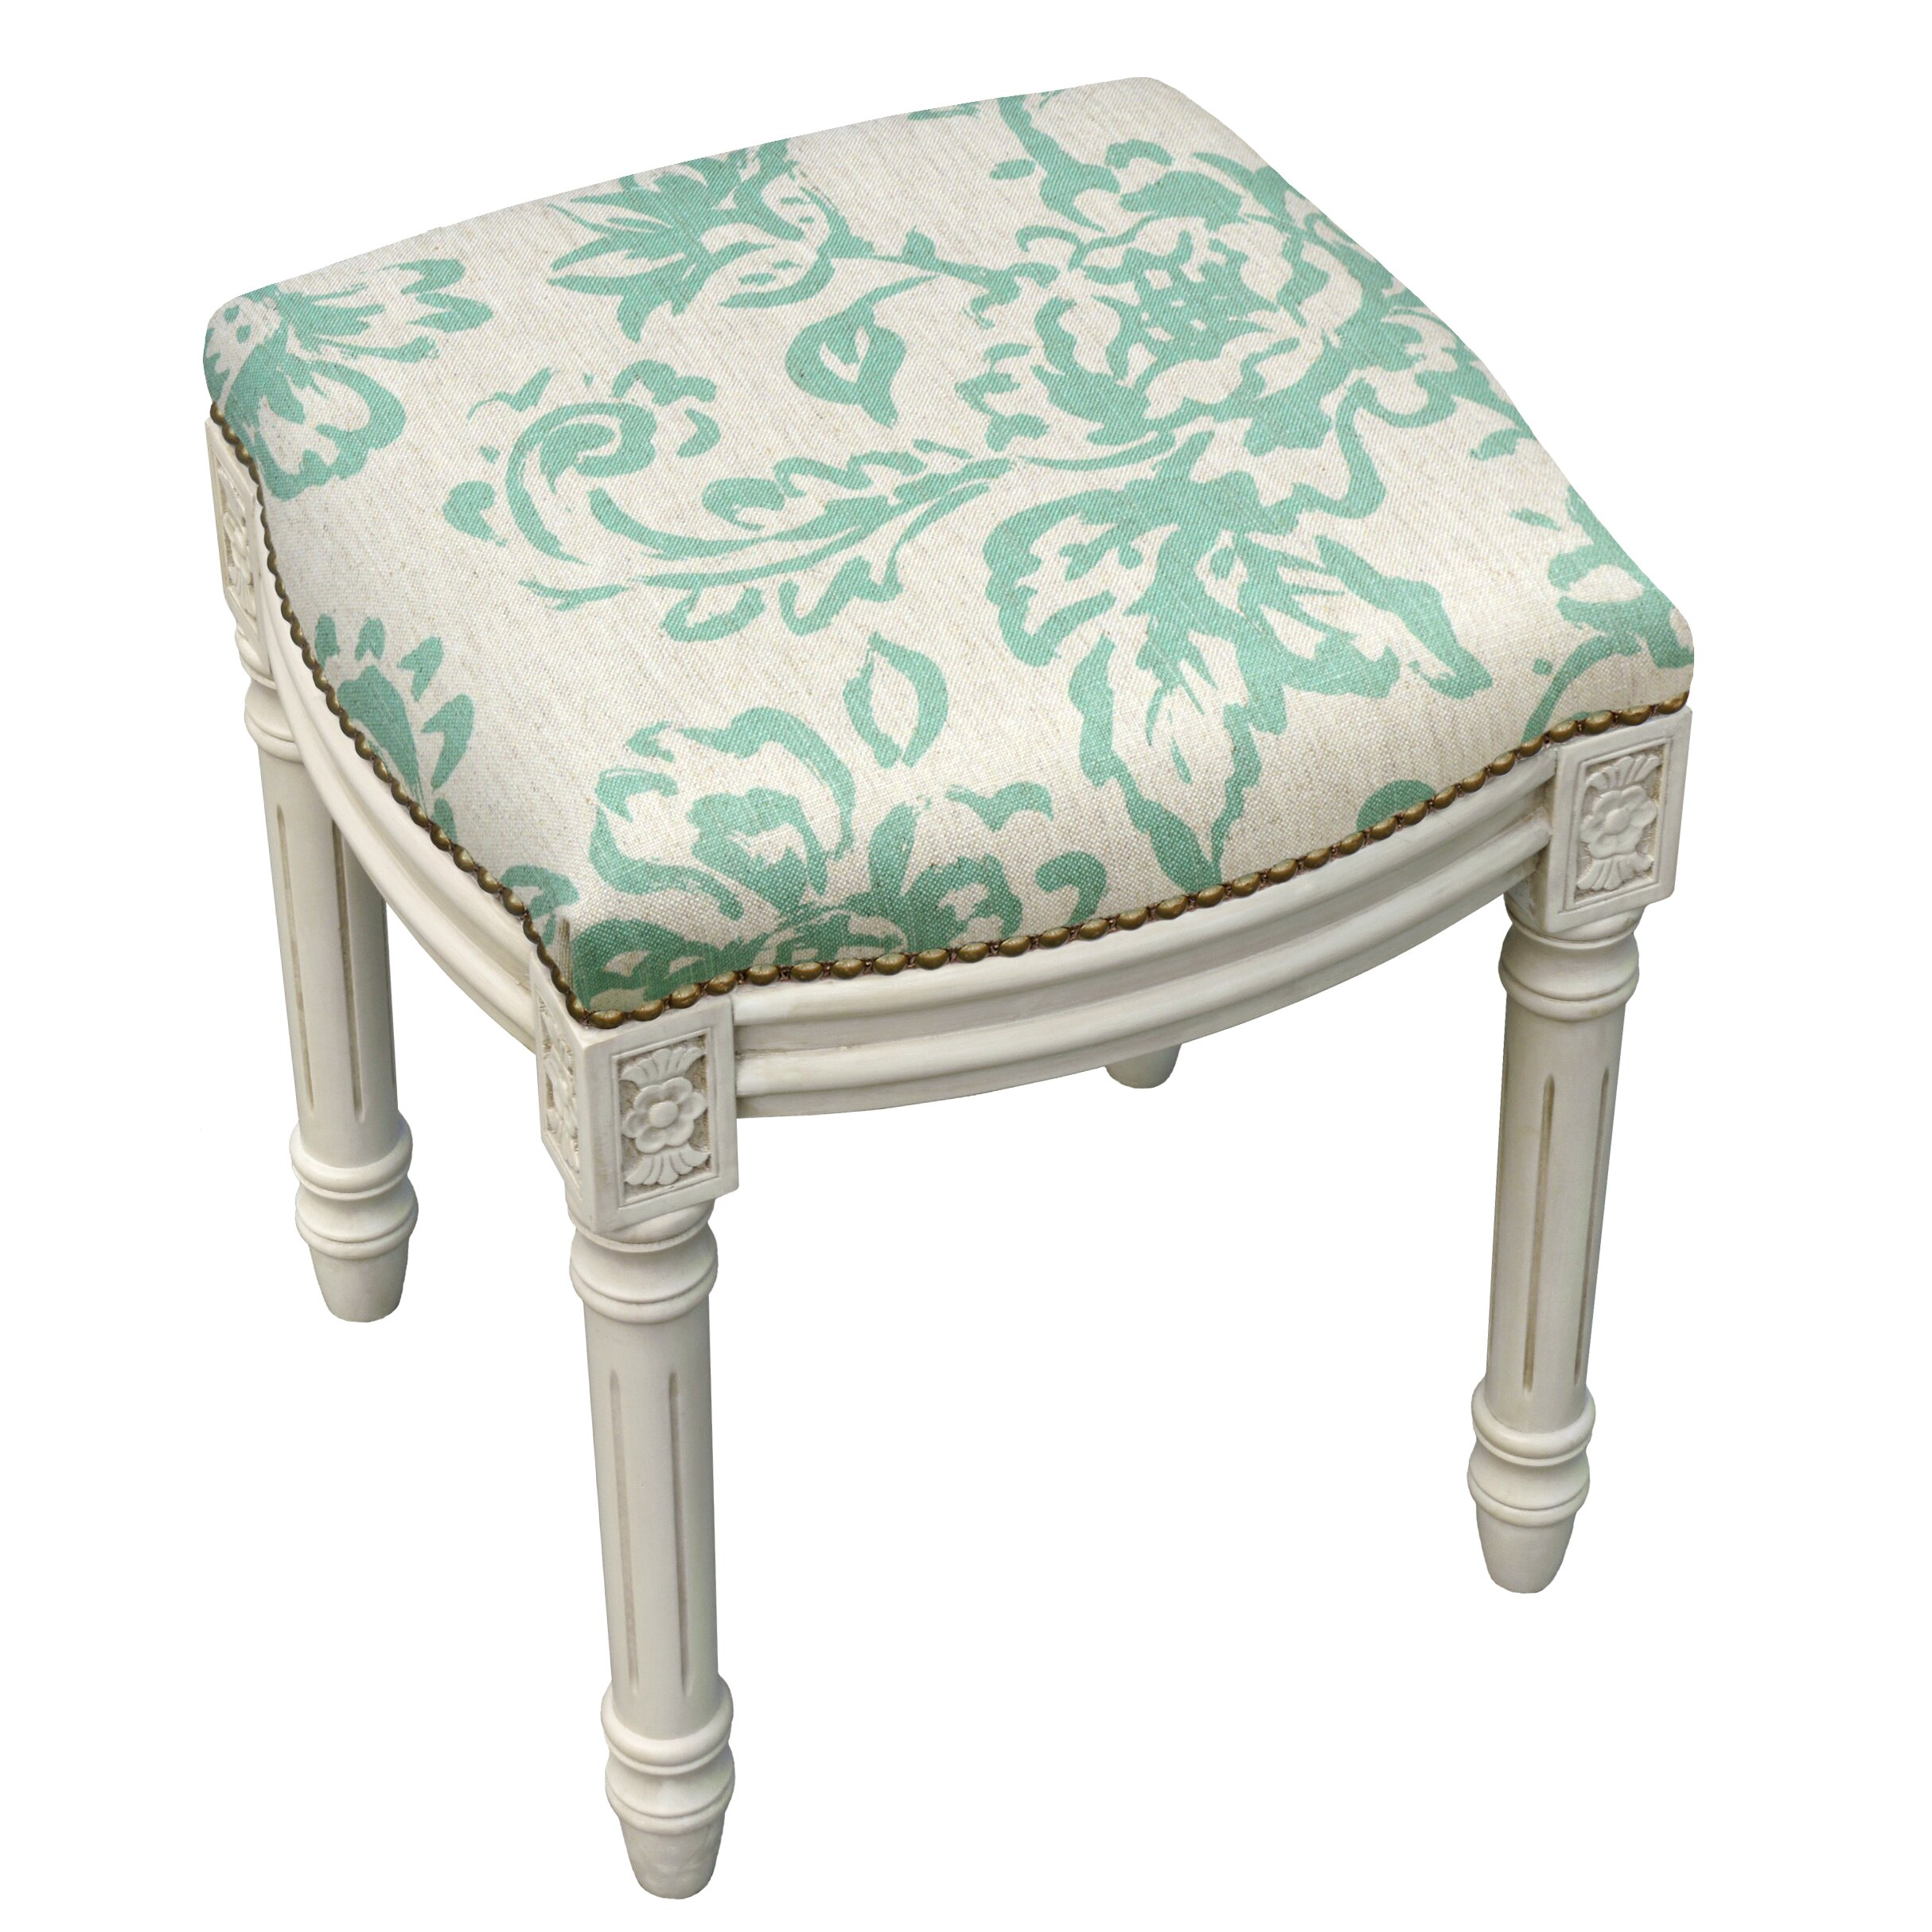 123 Creations Toile Linen Upholstered Vanity Stool With